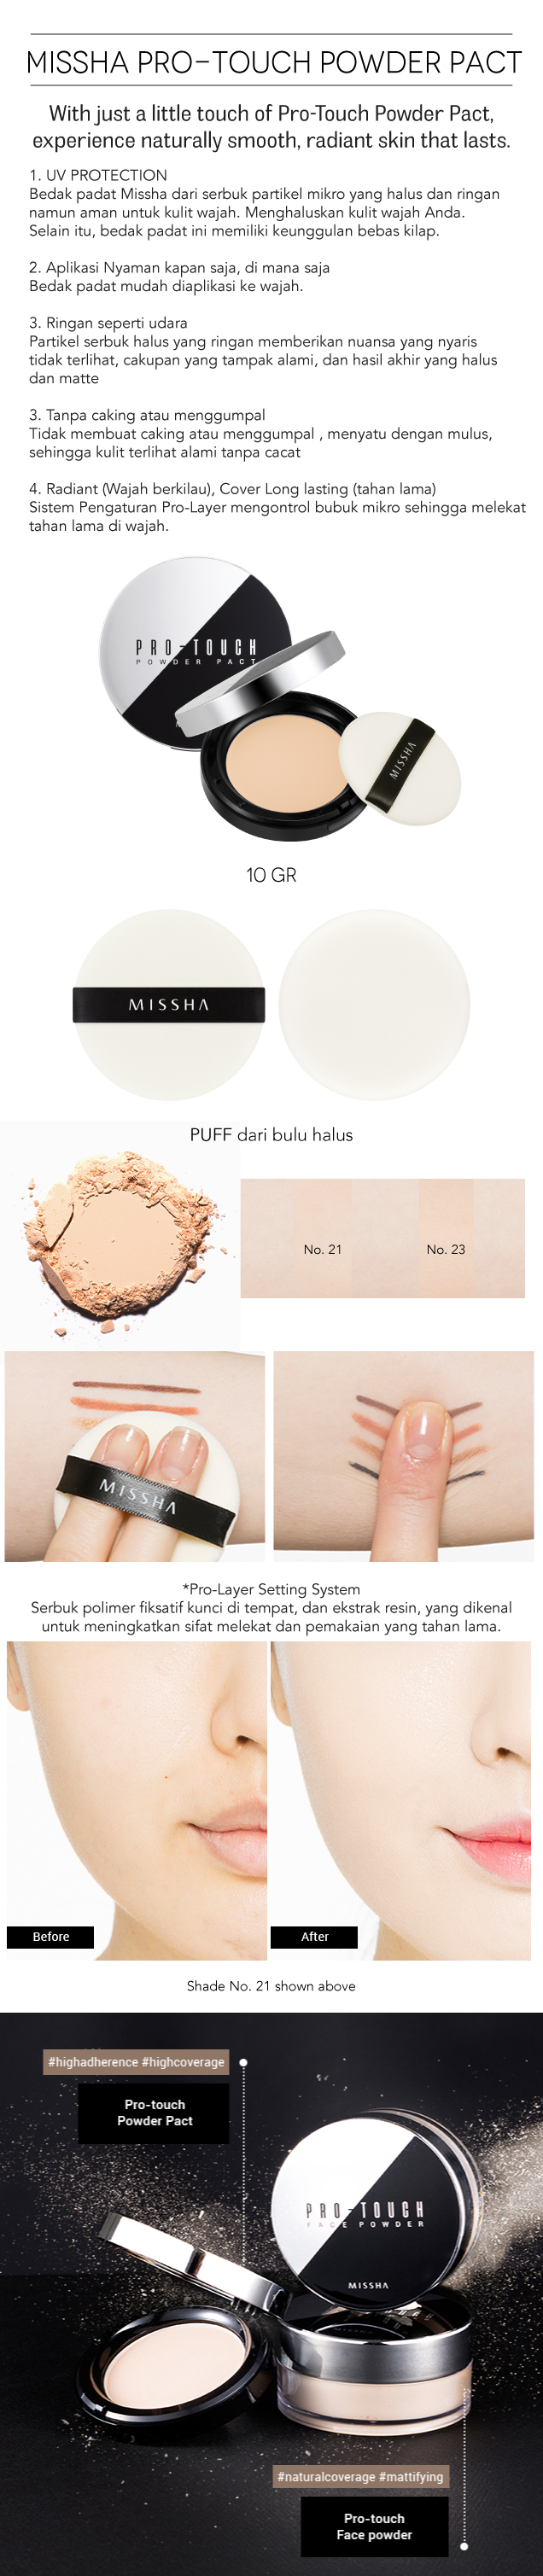 MISSHA PRO-TOUCH POWDER PACT